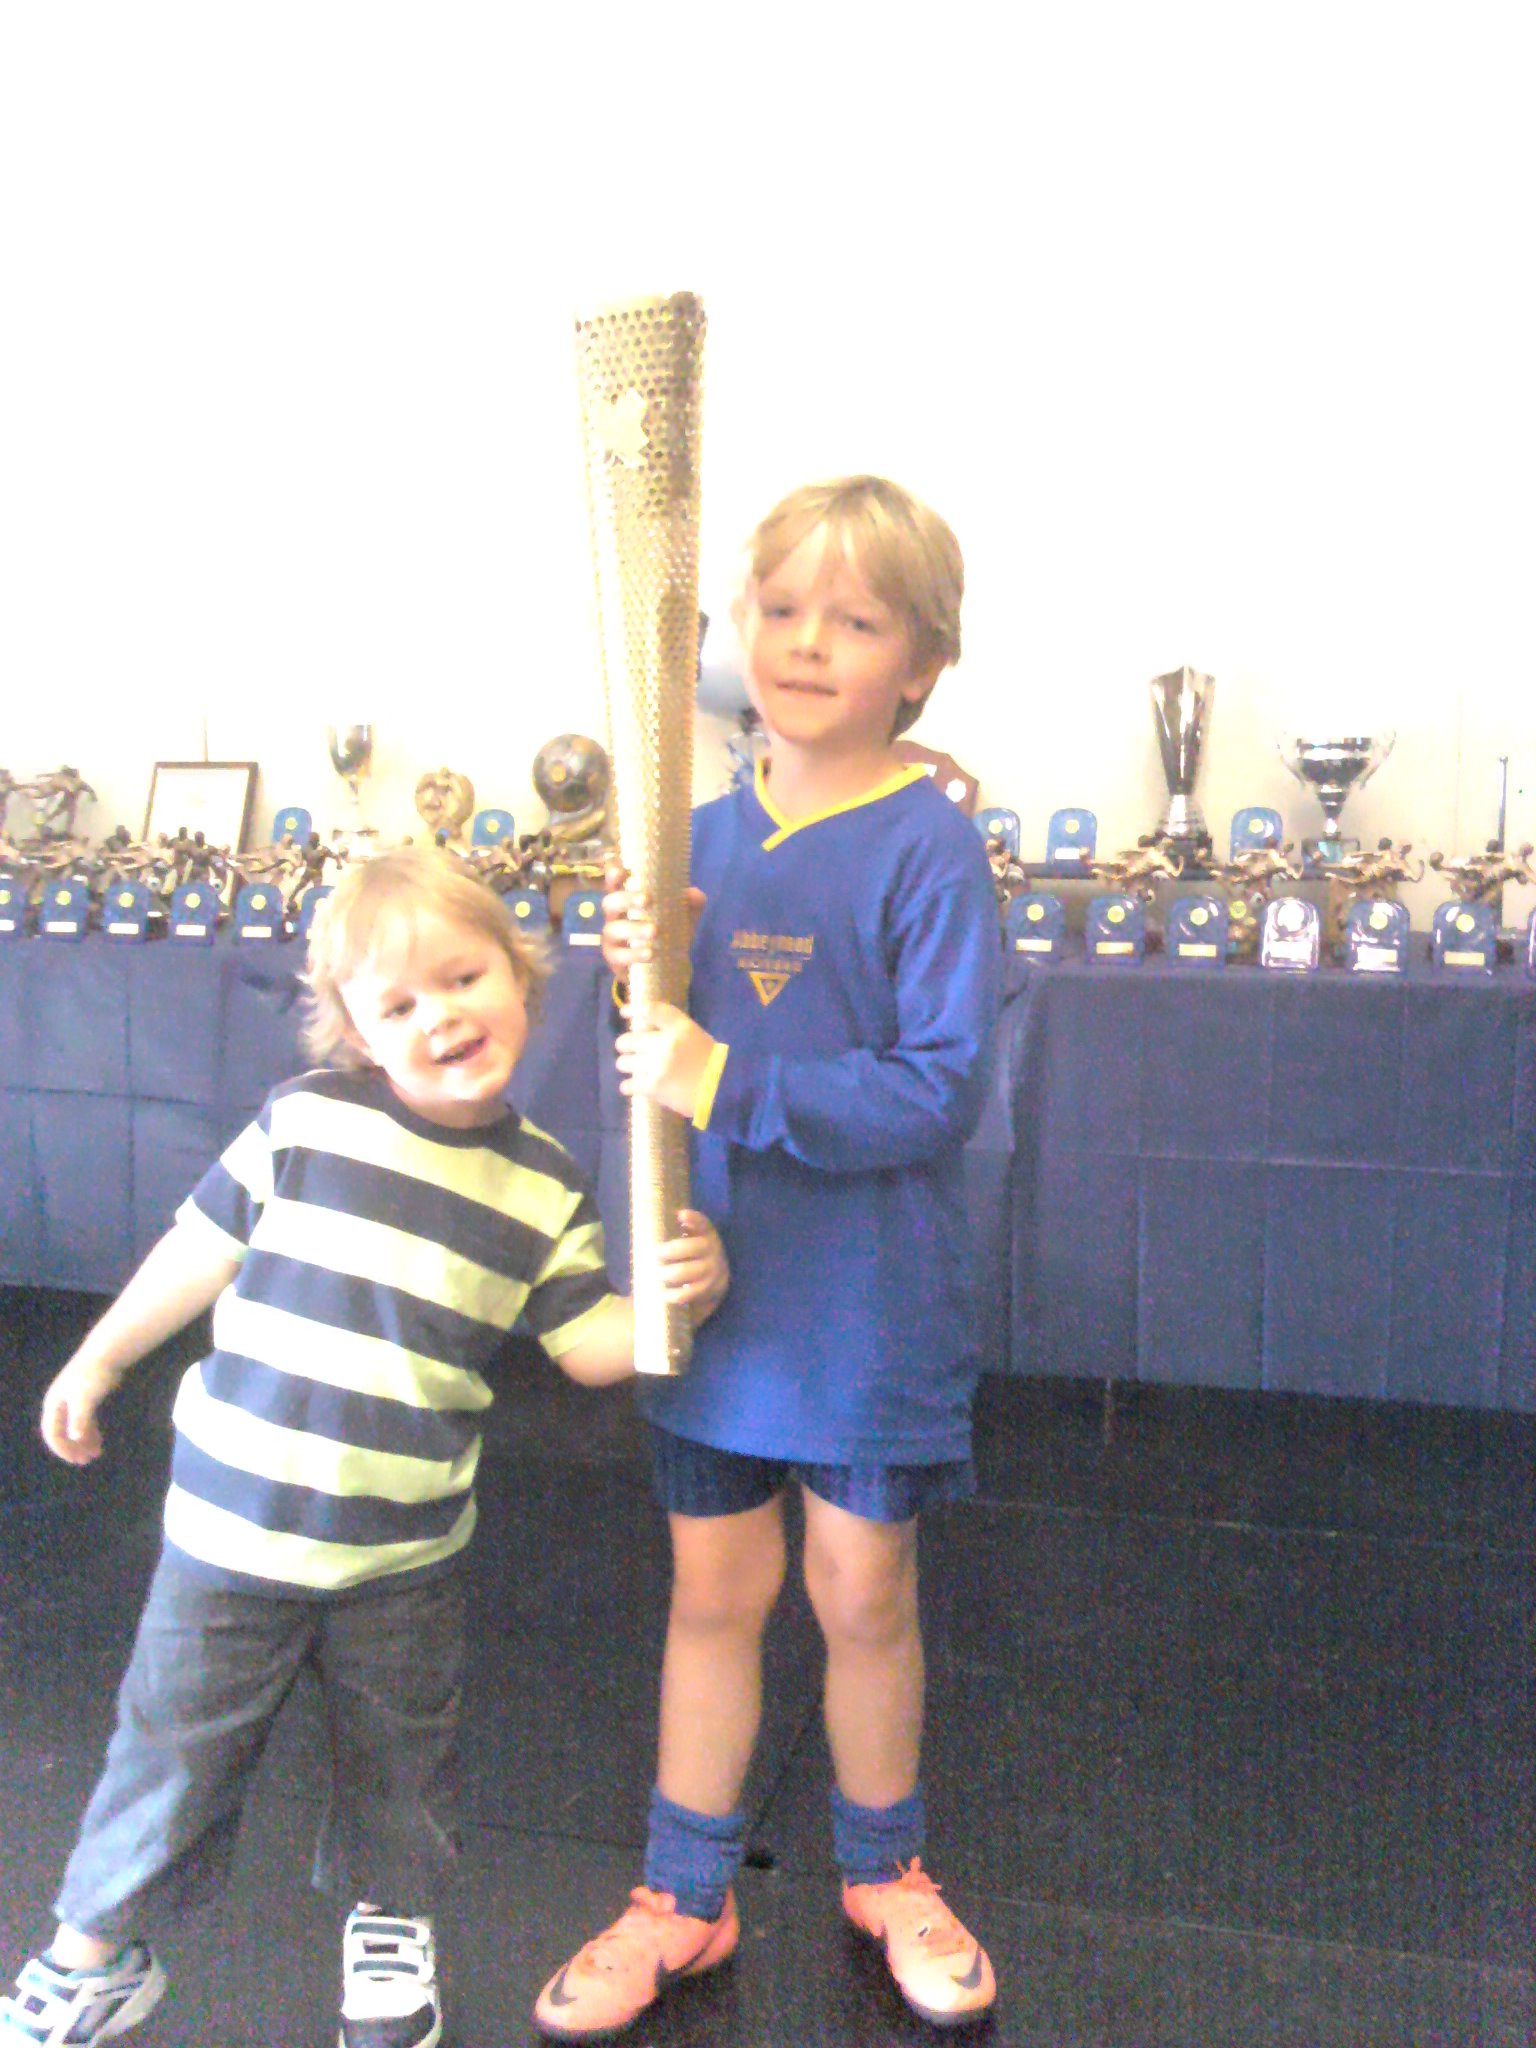 Olympic Torch Pic 3 http://t.co/O0eBkECb